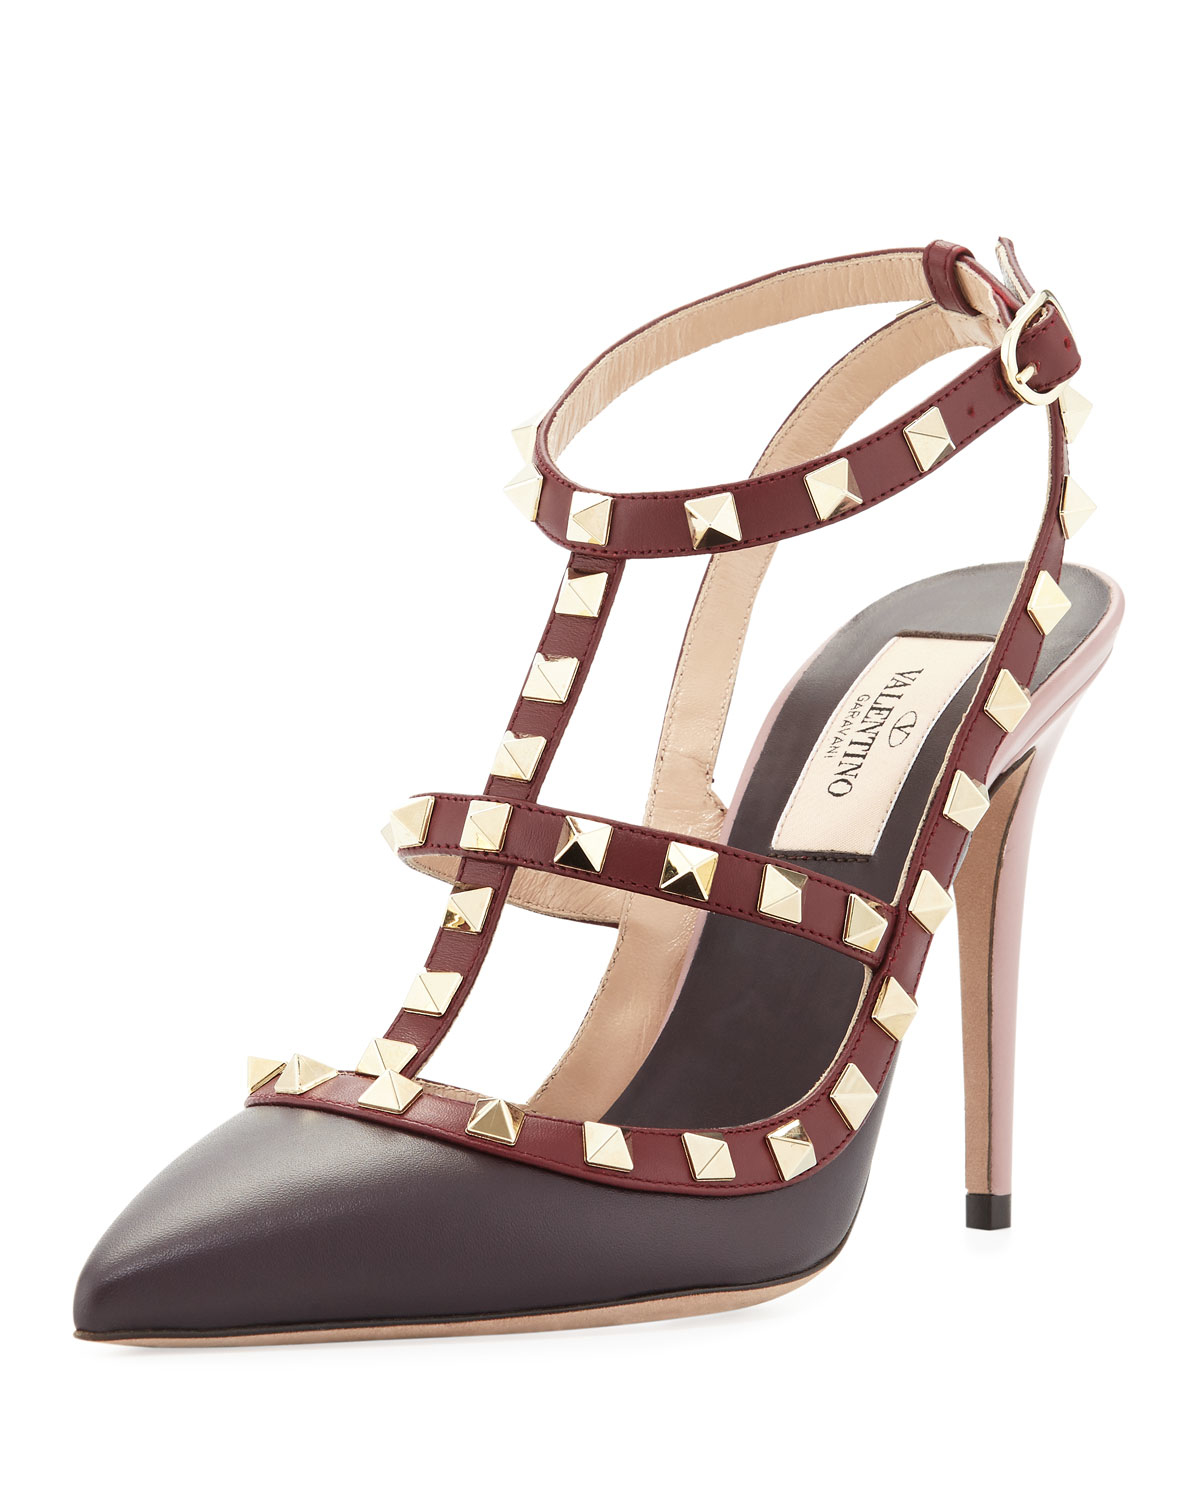 Lyst - Valentino Rockstud Color-Blocked Leather Sandal in Red